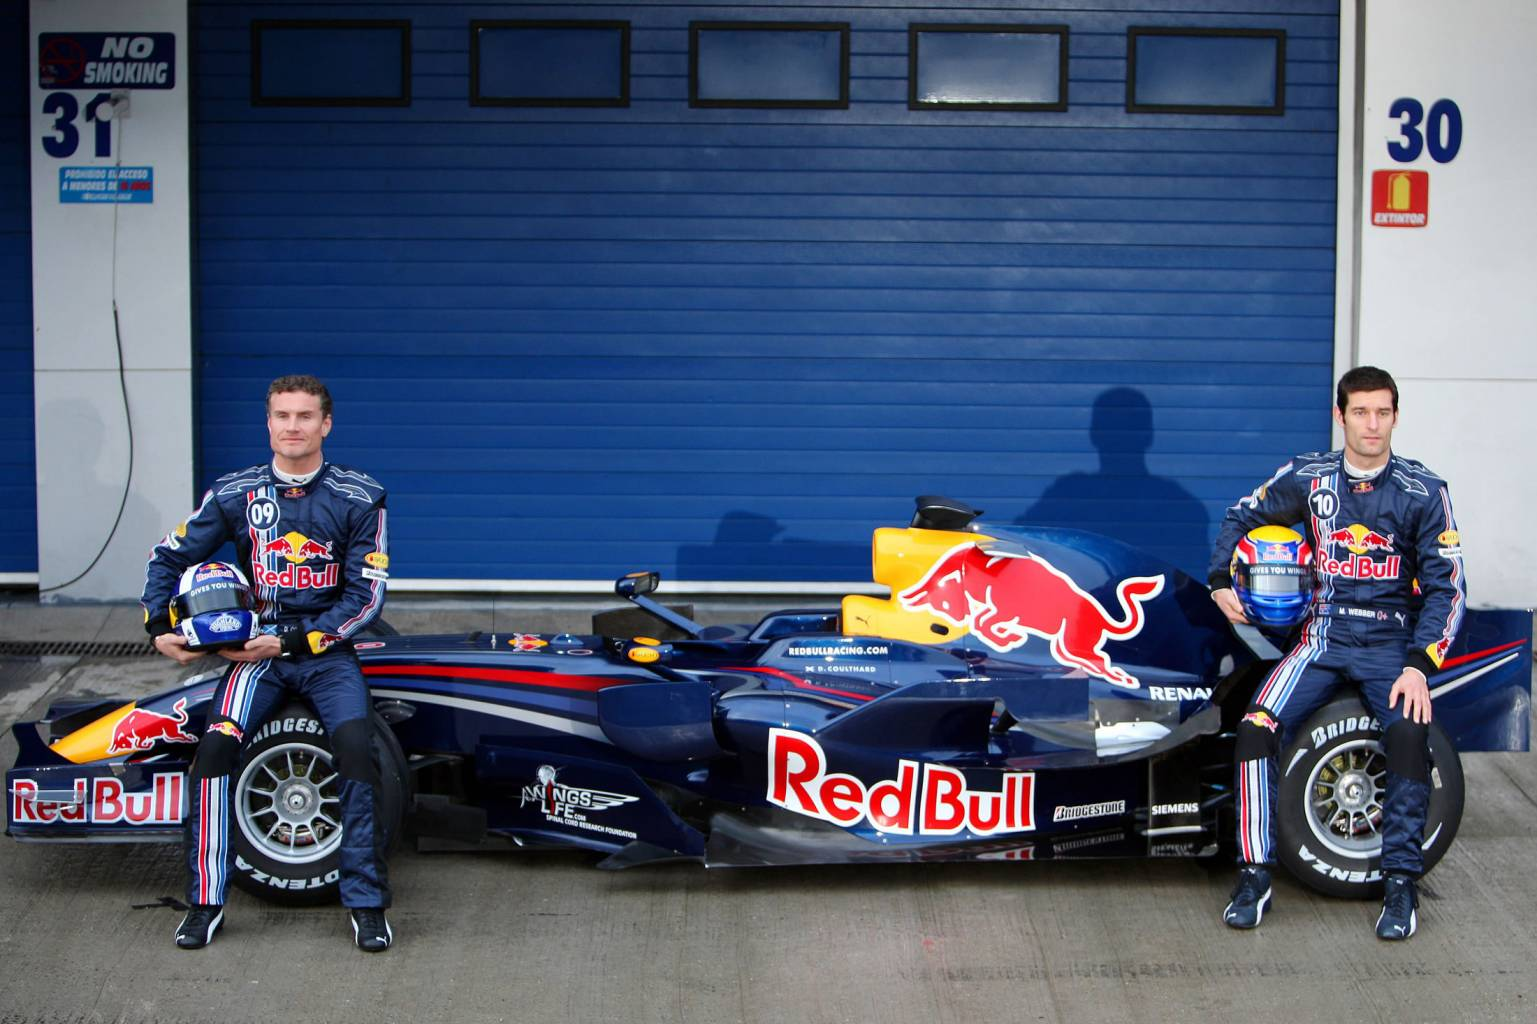 Red bull rb4 photo - 7